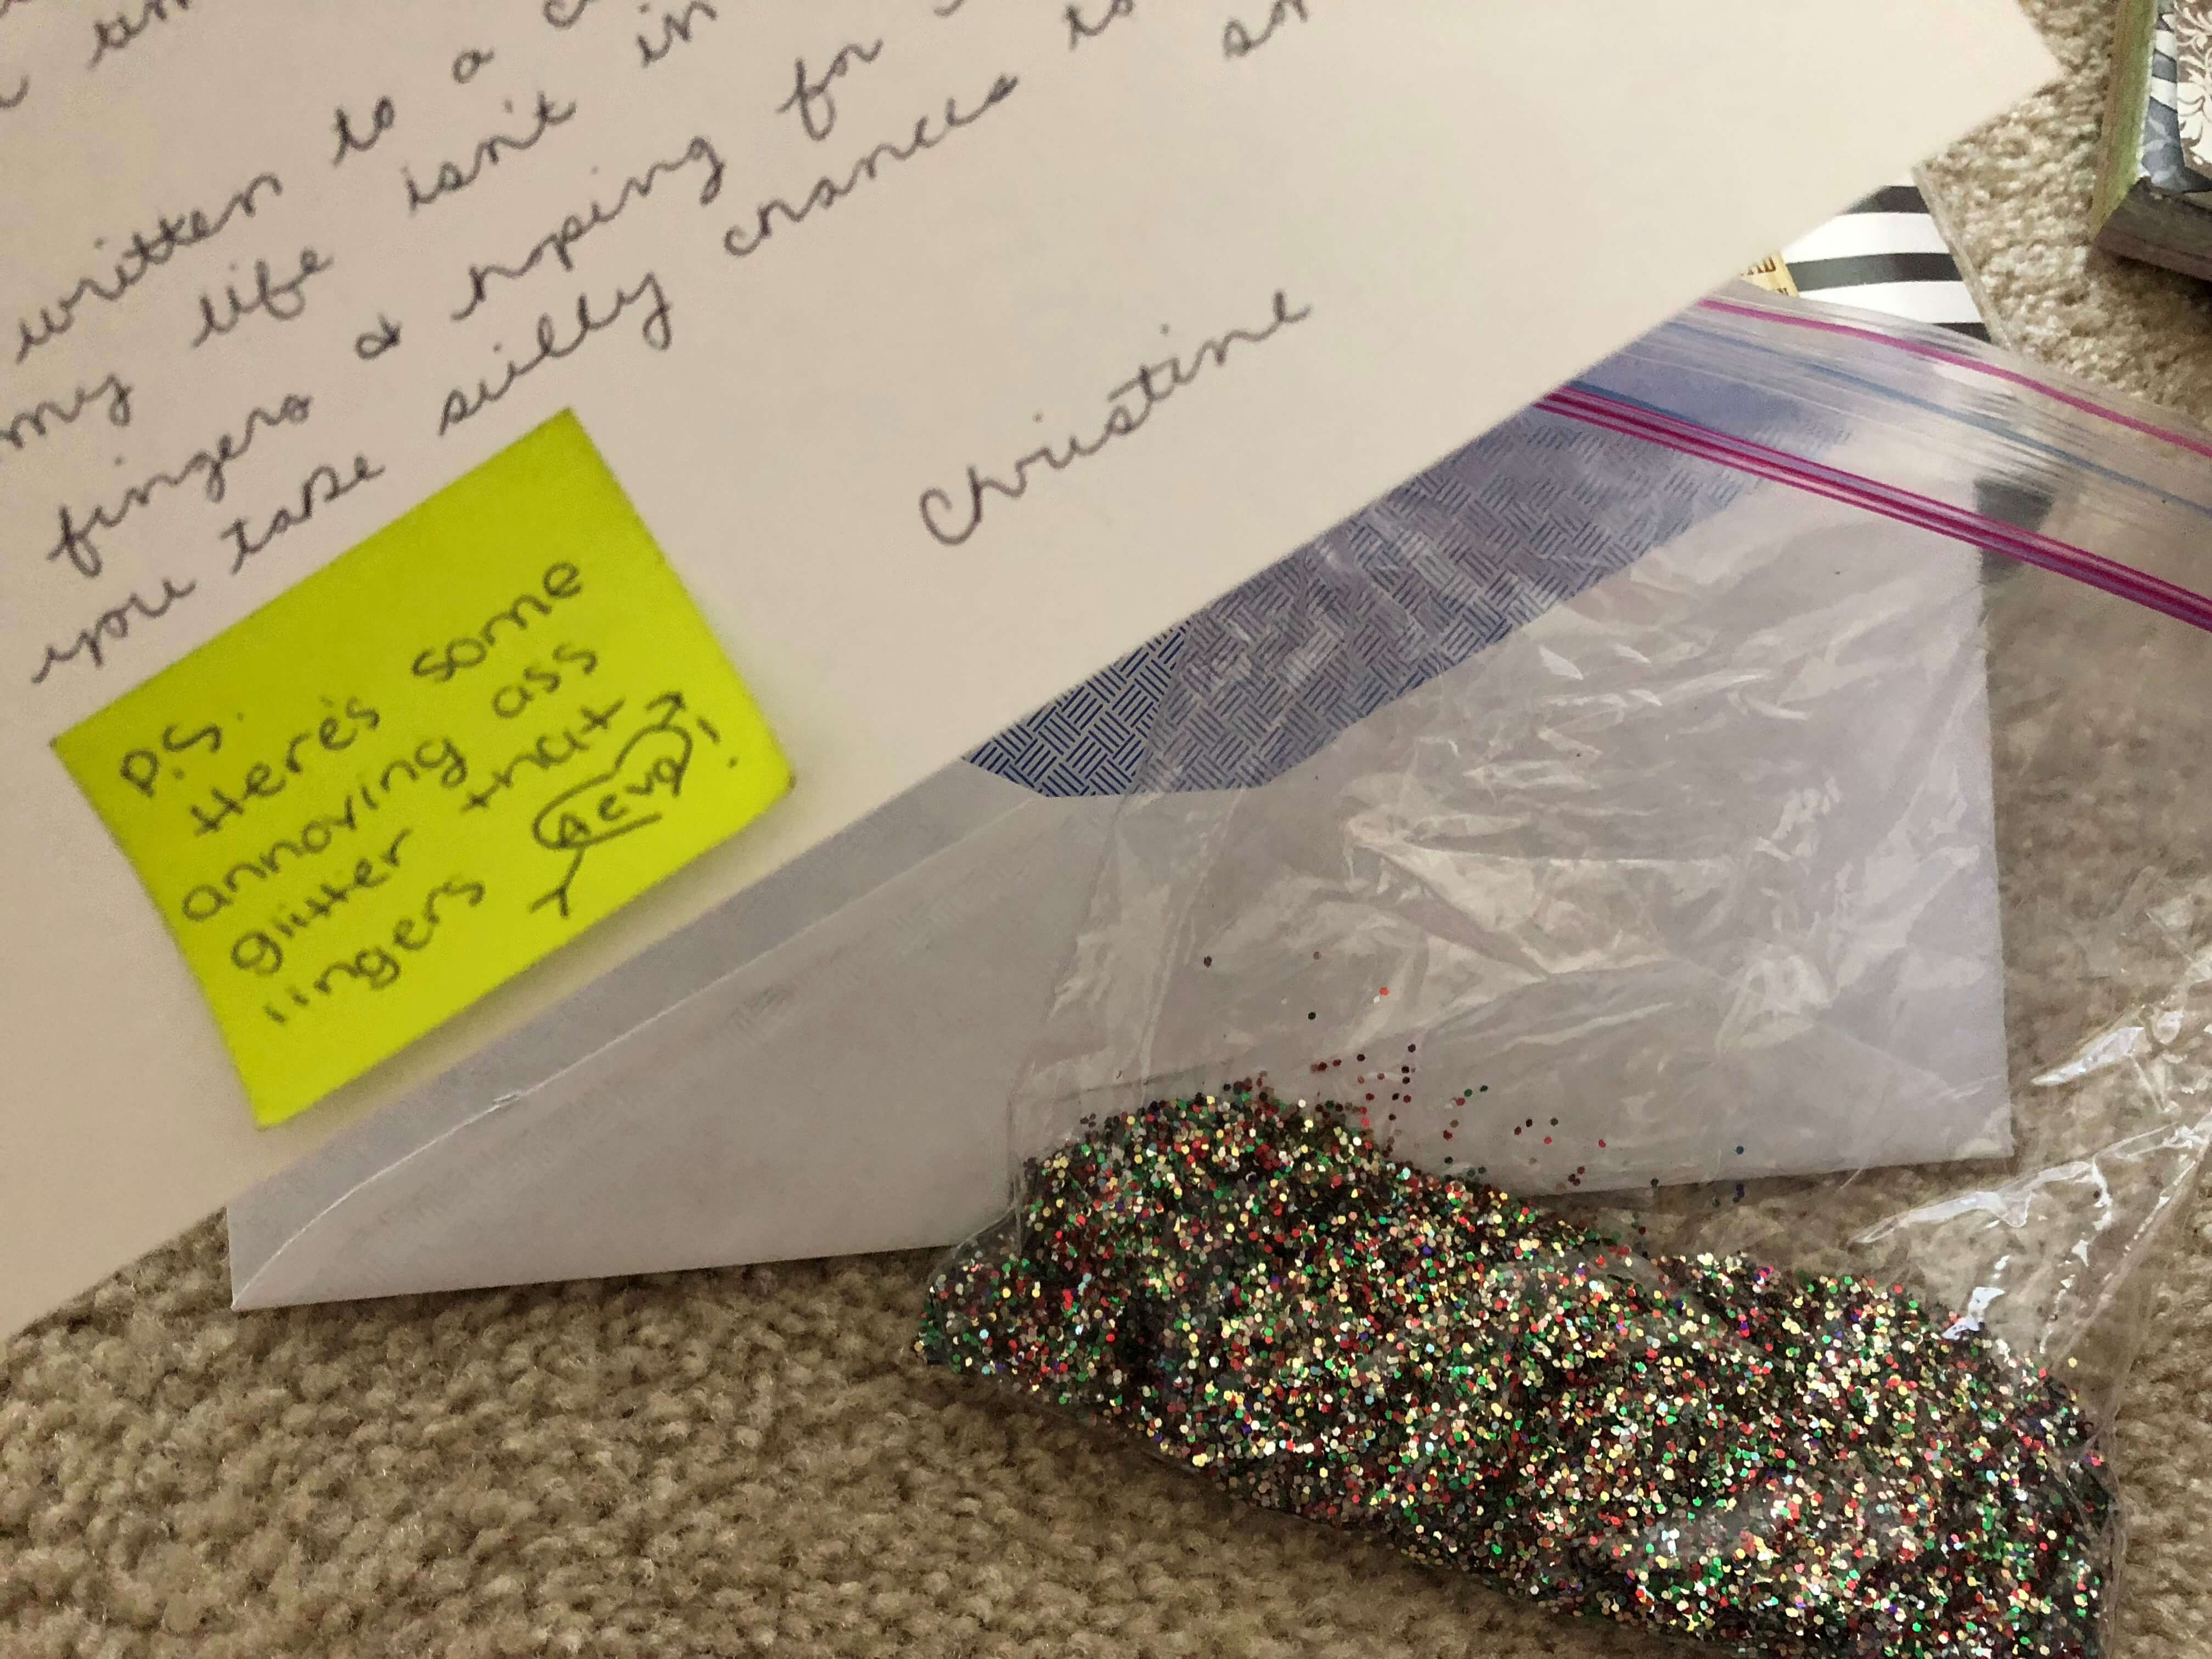 I Mail Hand Written Love Letters to Strangers – Part 3